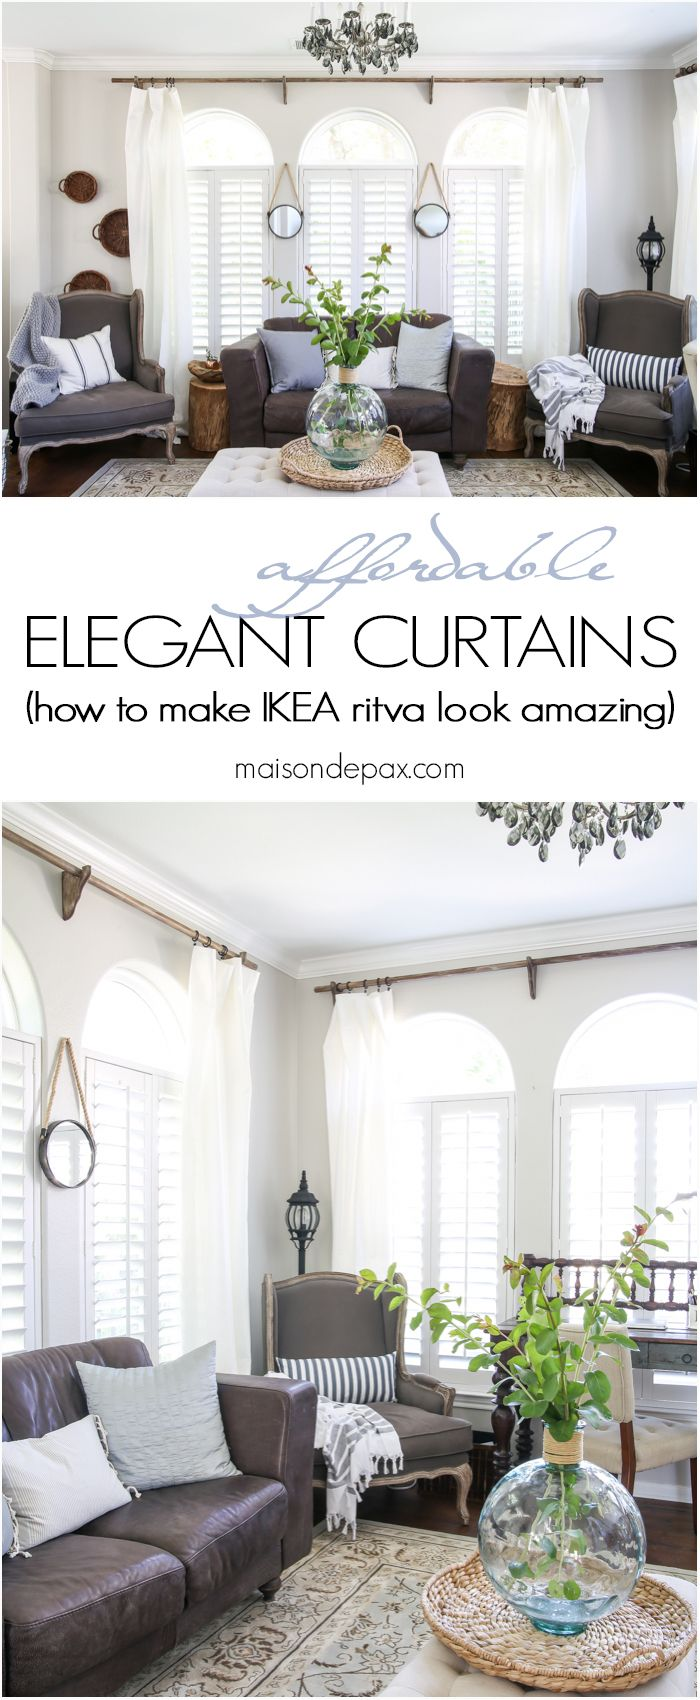 17 Images About Build Ikea Panel Curtain On Pinterest: 17 Best Images About Curtain Looks On Pinterest